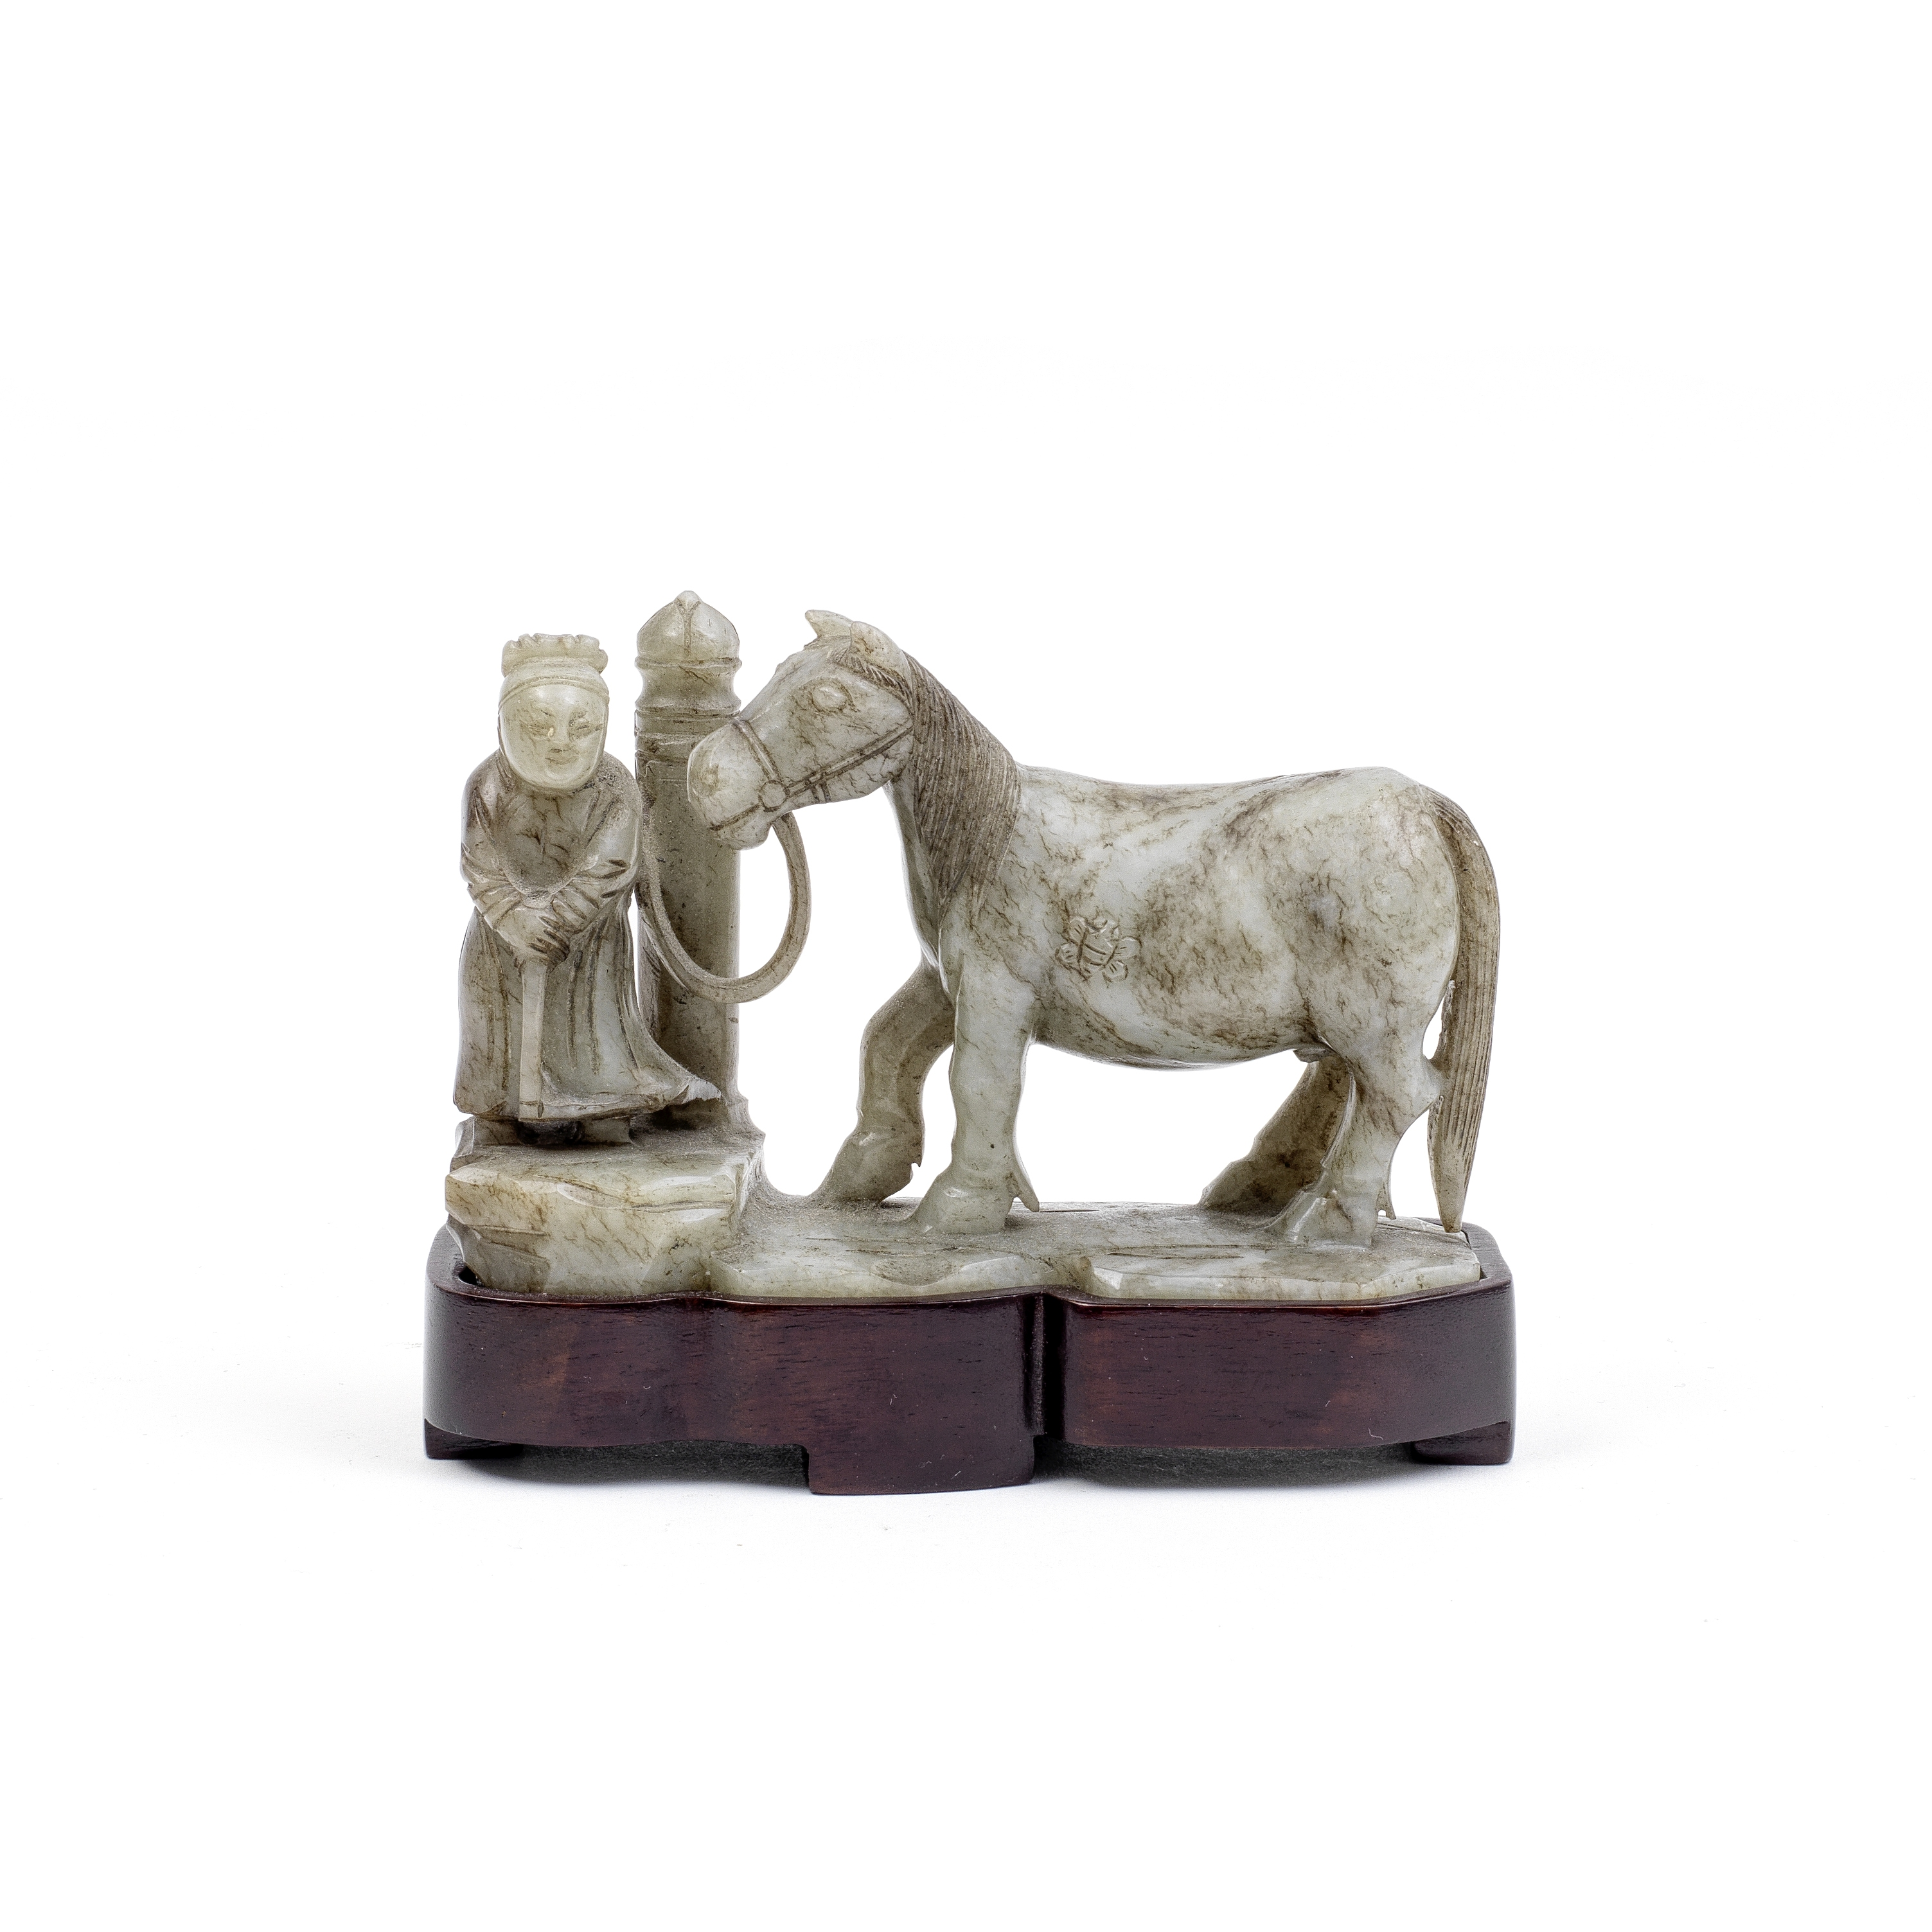 A PALE GREYISH-GREEN AND RUSSET JADE 'HORSE AND GROOM' GROUP 18th/19th century (2)